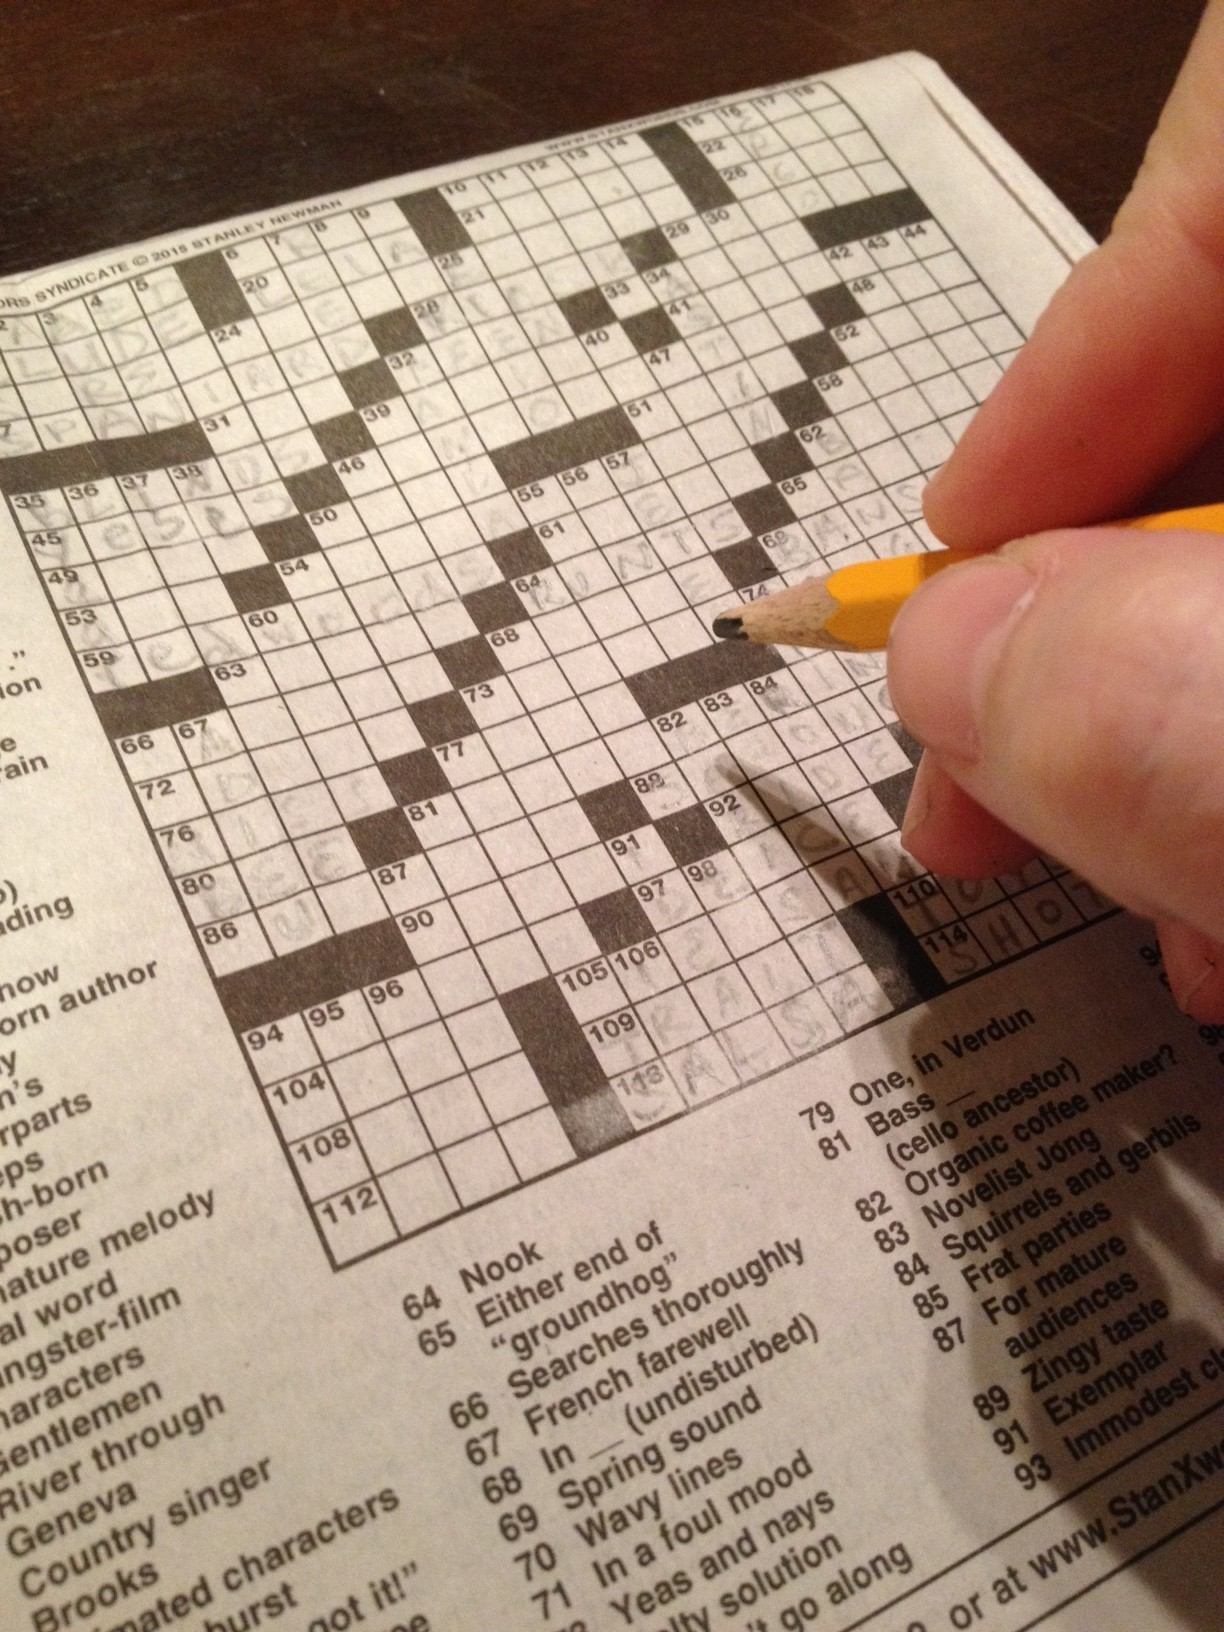 Blessings: Crossword Puzzles (Day 12)